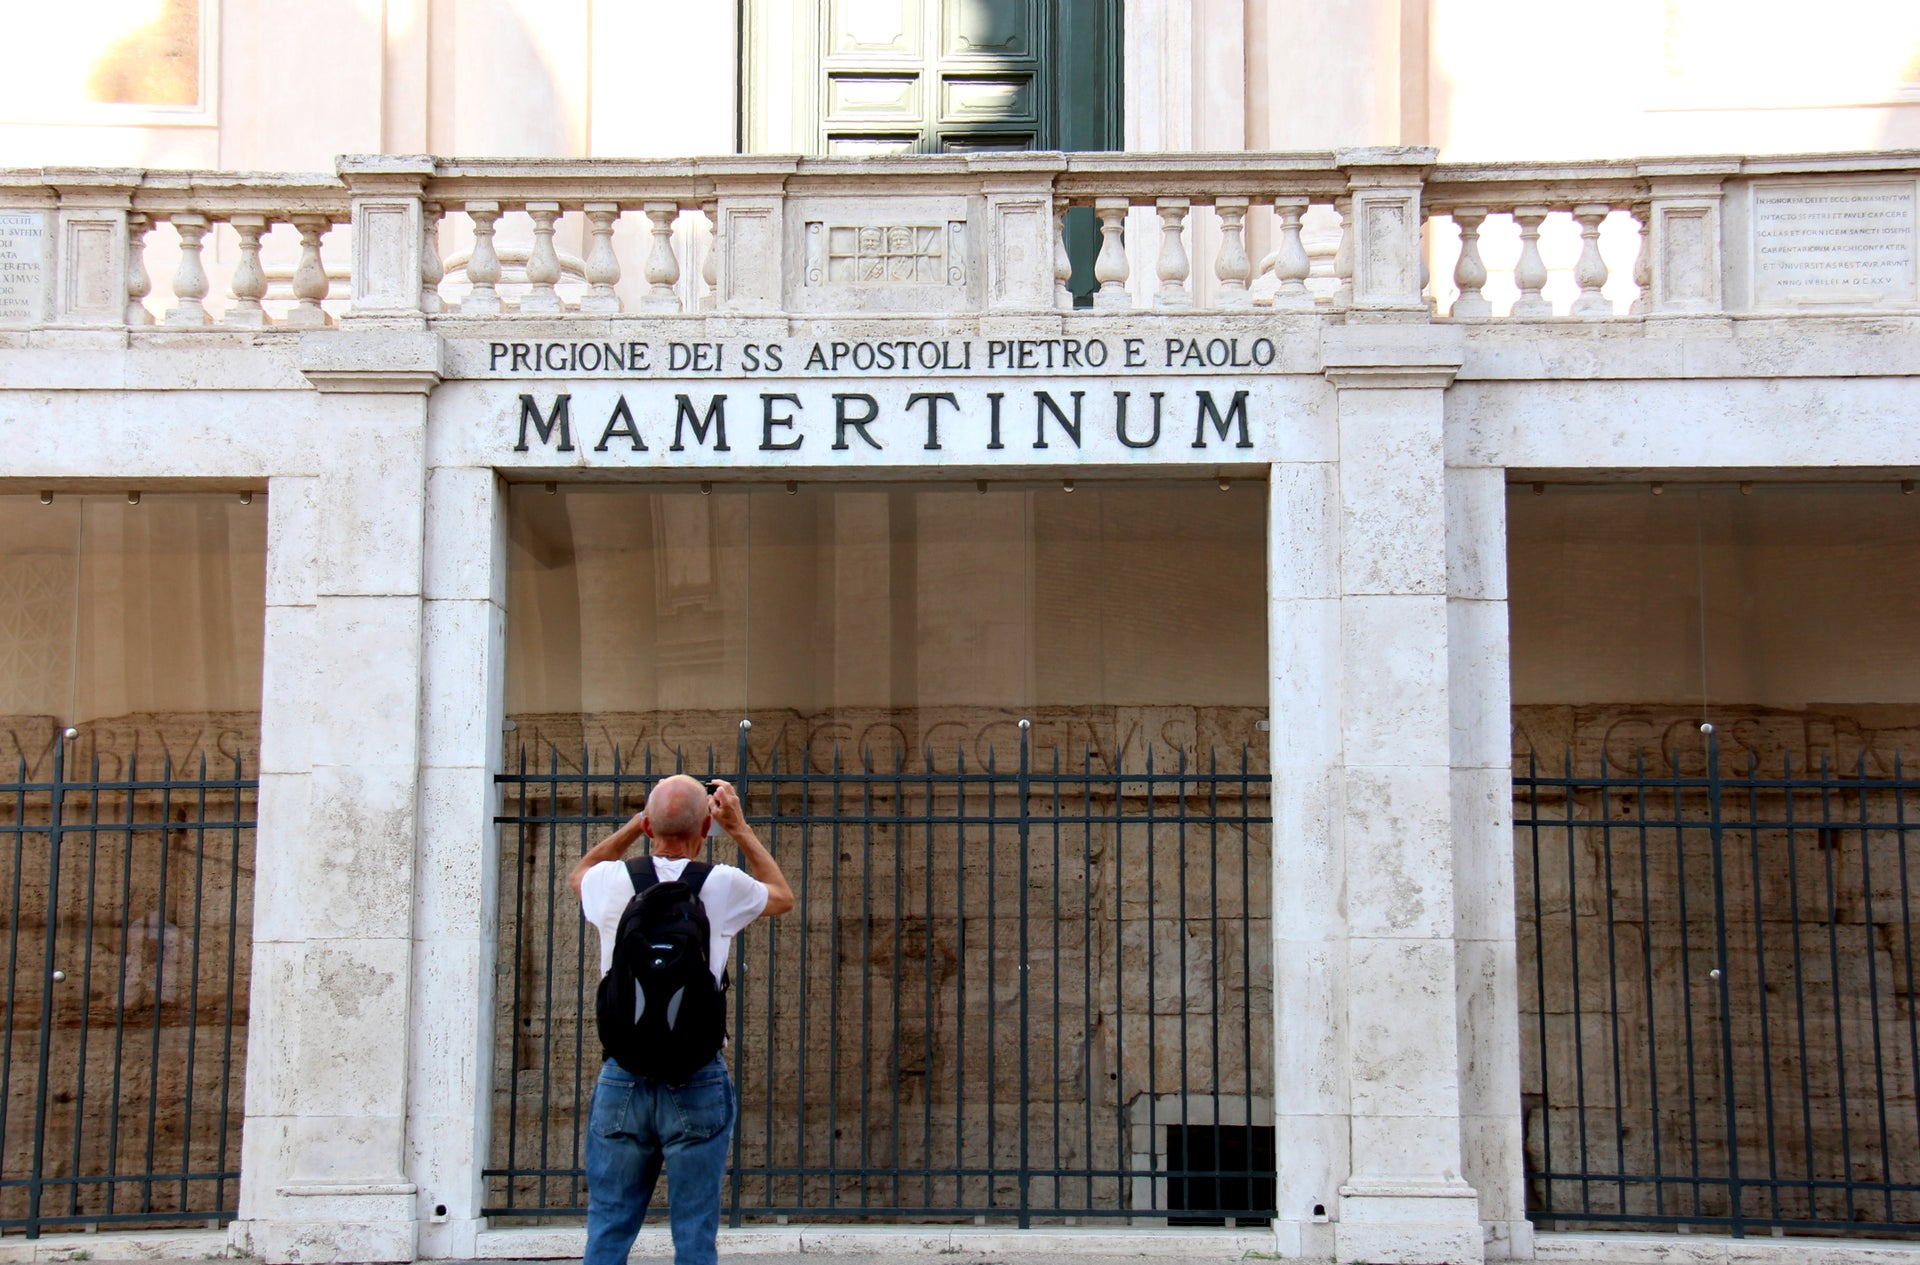 The entrance to the site, which was known as the Mamertine prison during the Middle Ages.